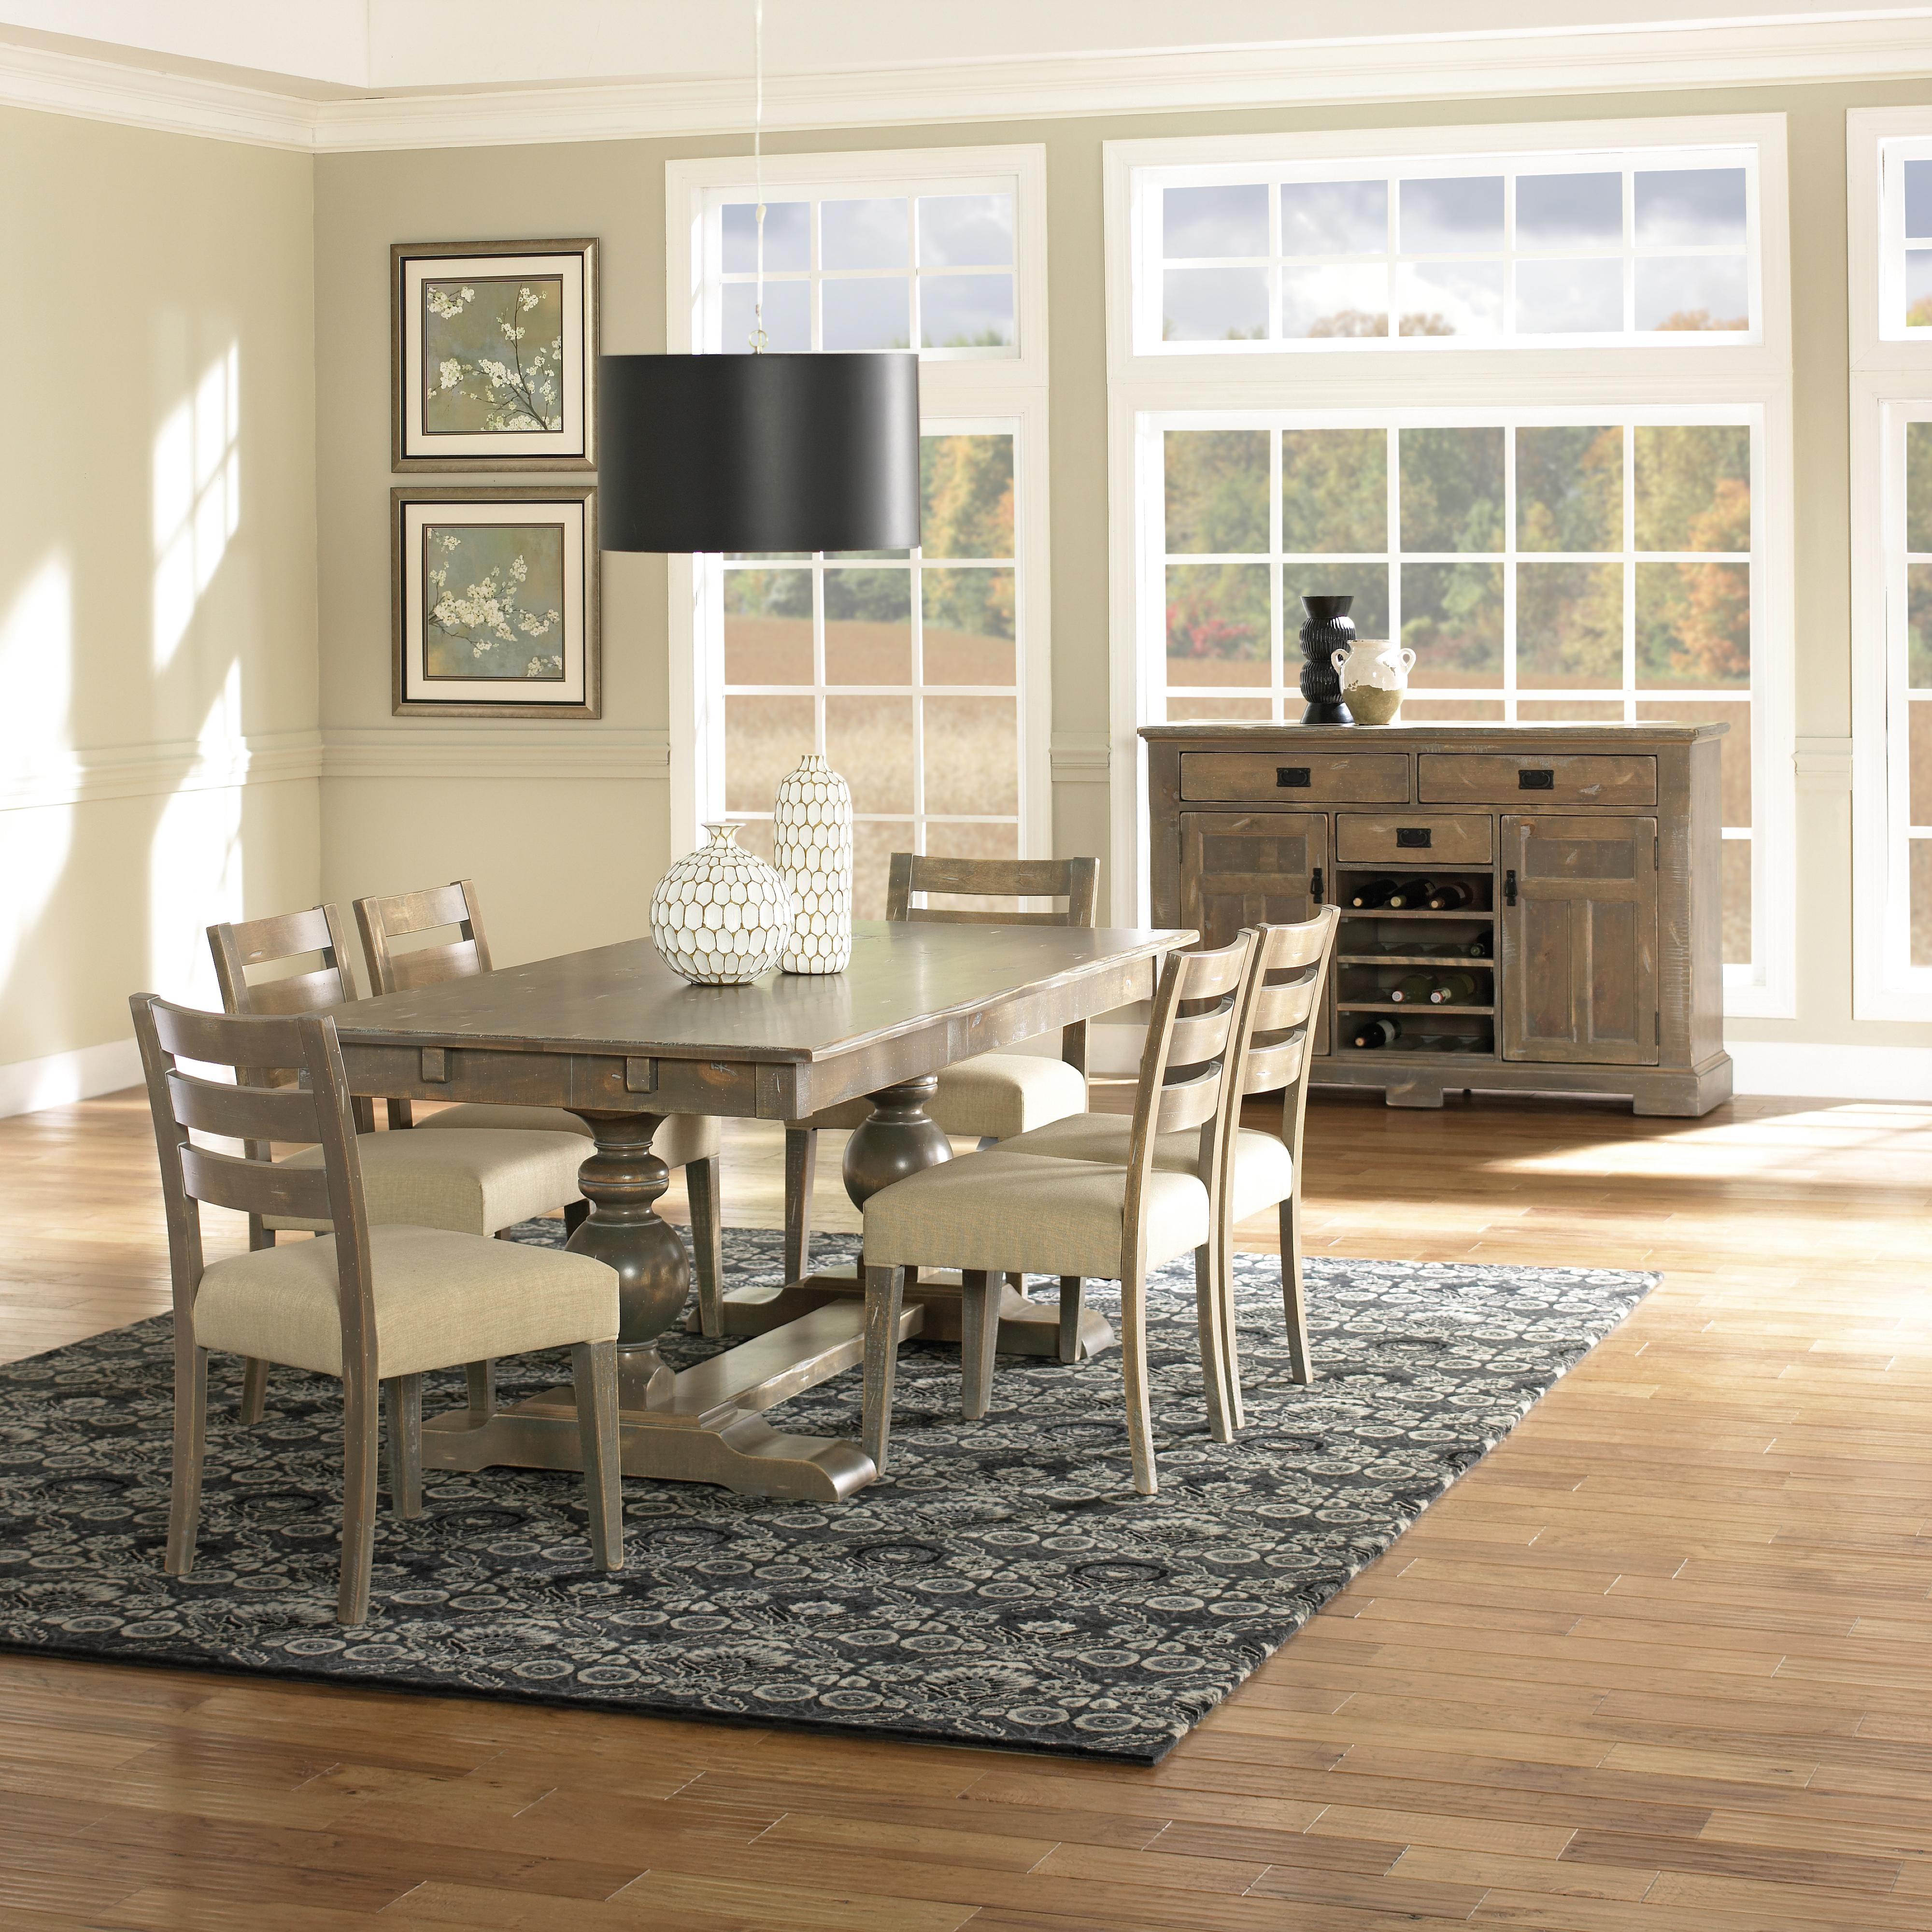 Champlain - Custom Dining Formal Dining Room Group by Canadel at Jordan's Home Furnishings